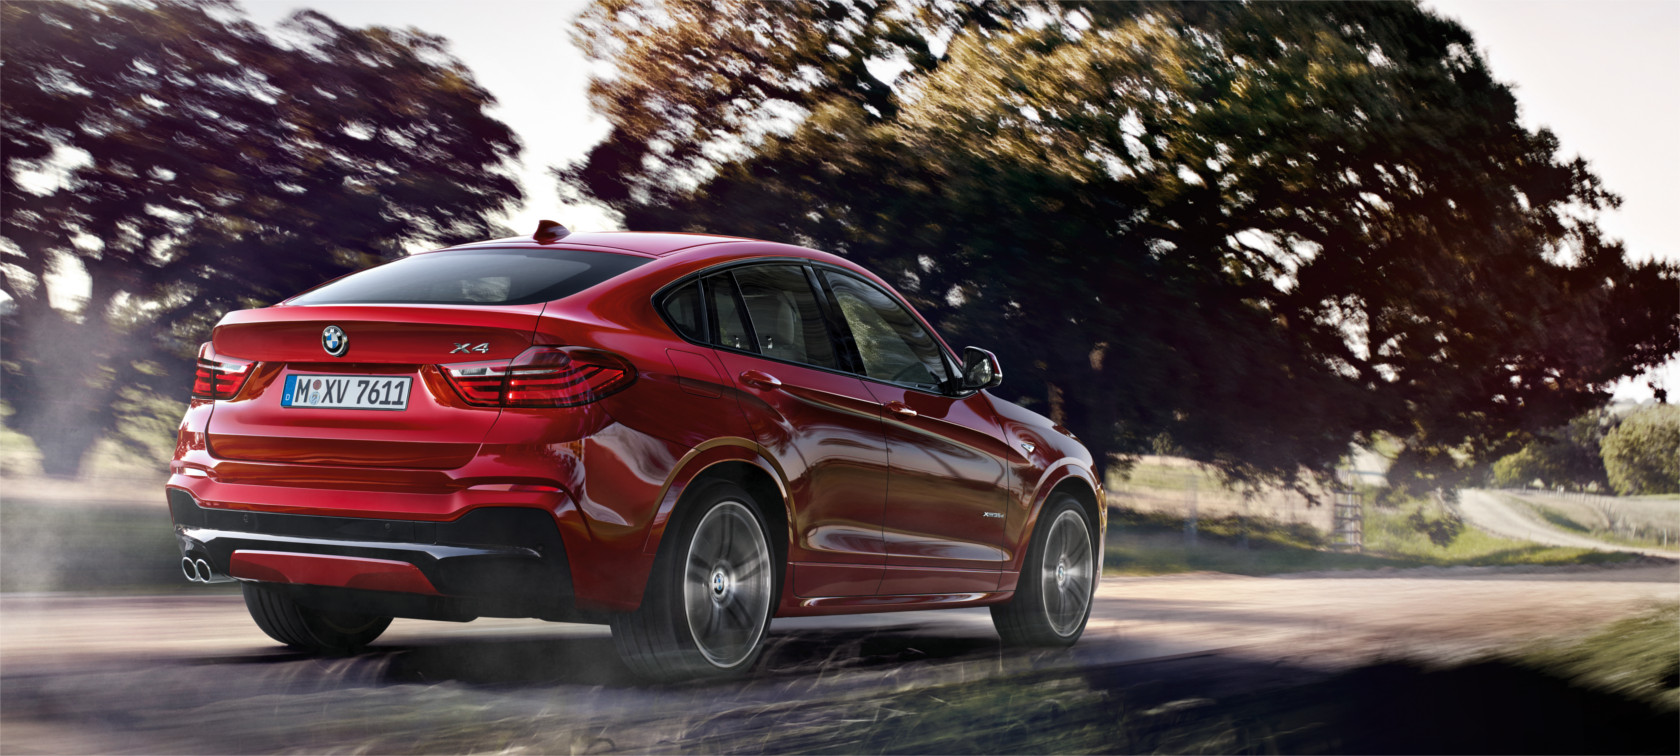 The driving dynamics of the BMW X4